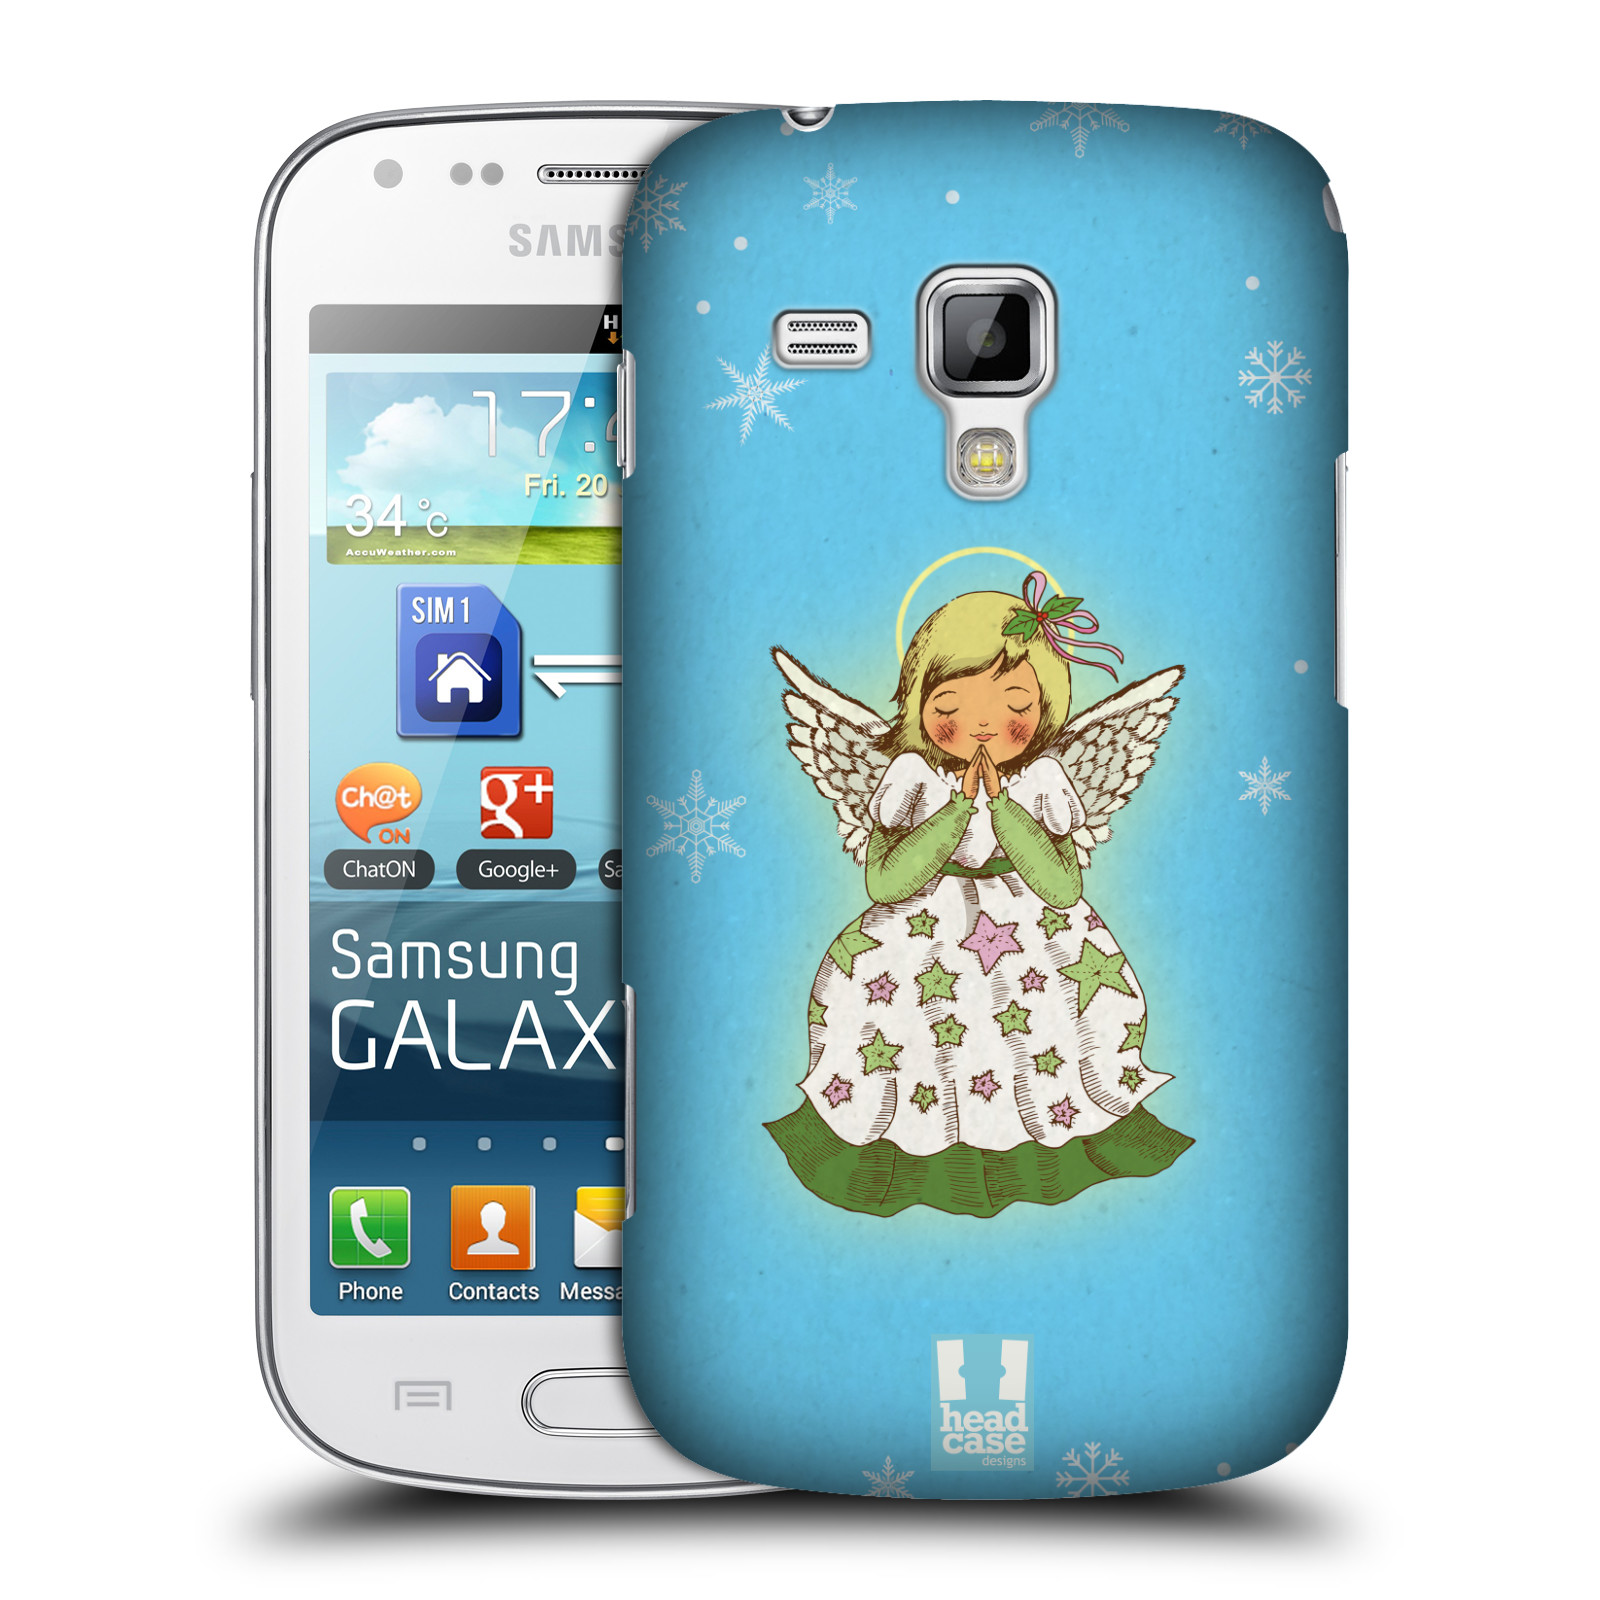 HEAD CASE DESIGNS CHRISTMAS ESSENTIALS CASE FOR SAMSUNG GALAXY TREND S7560